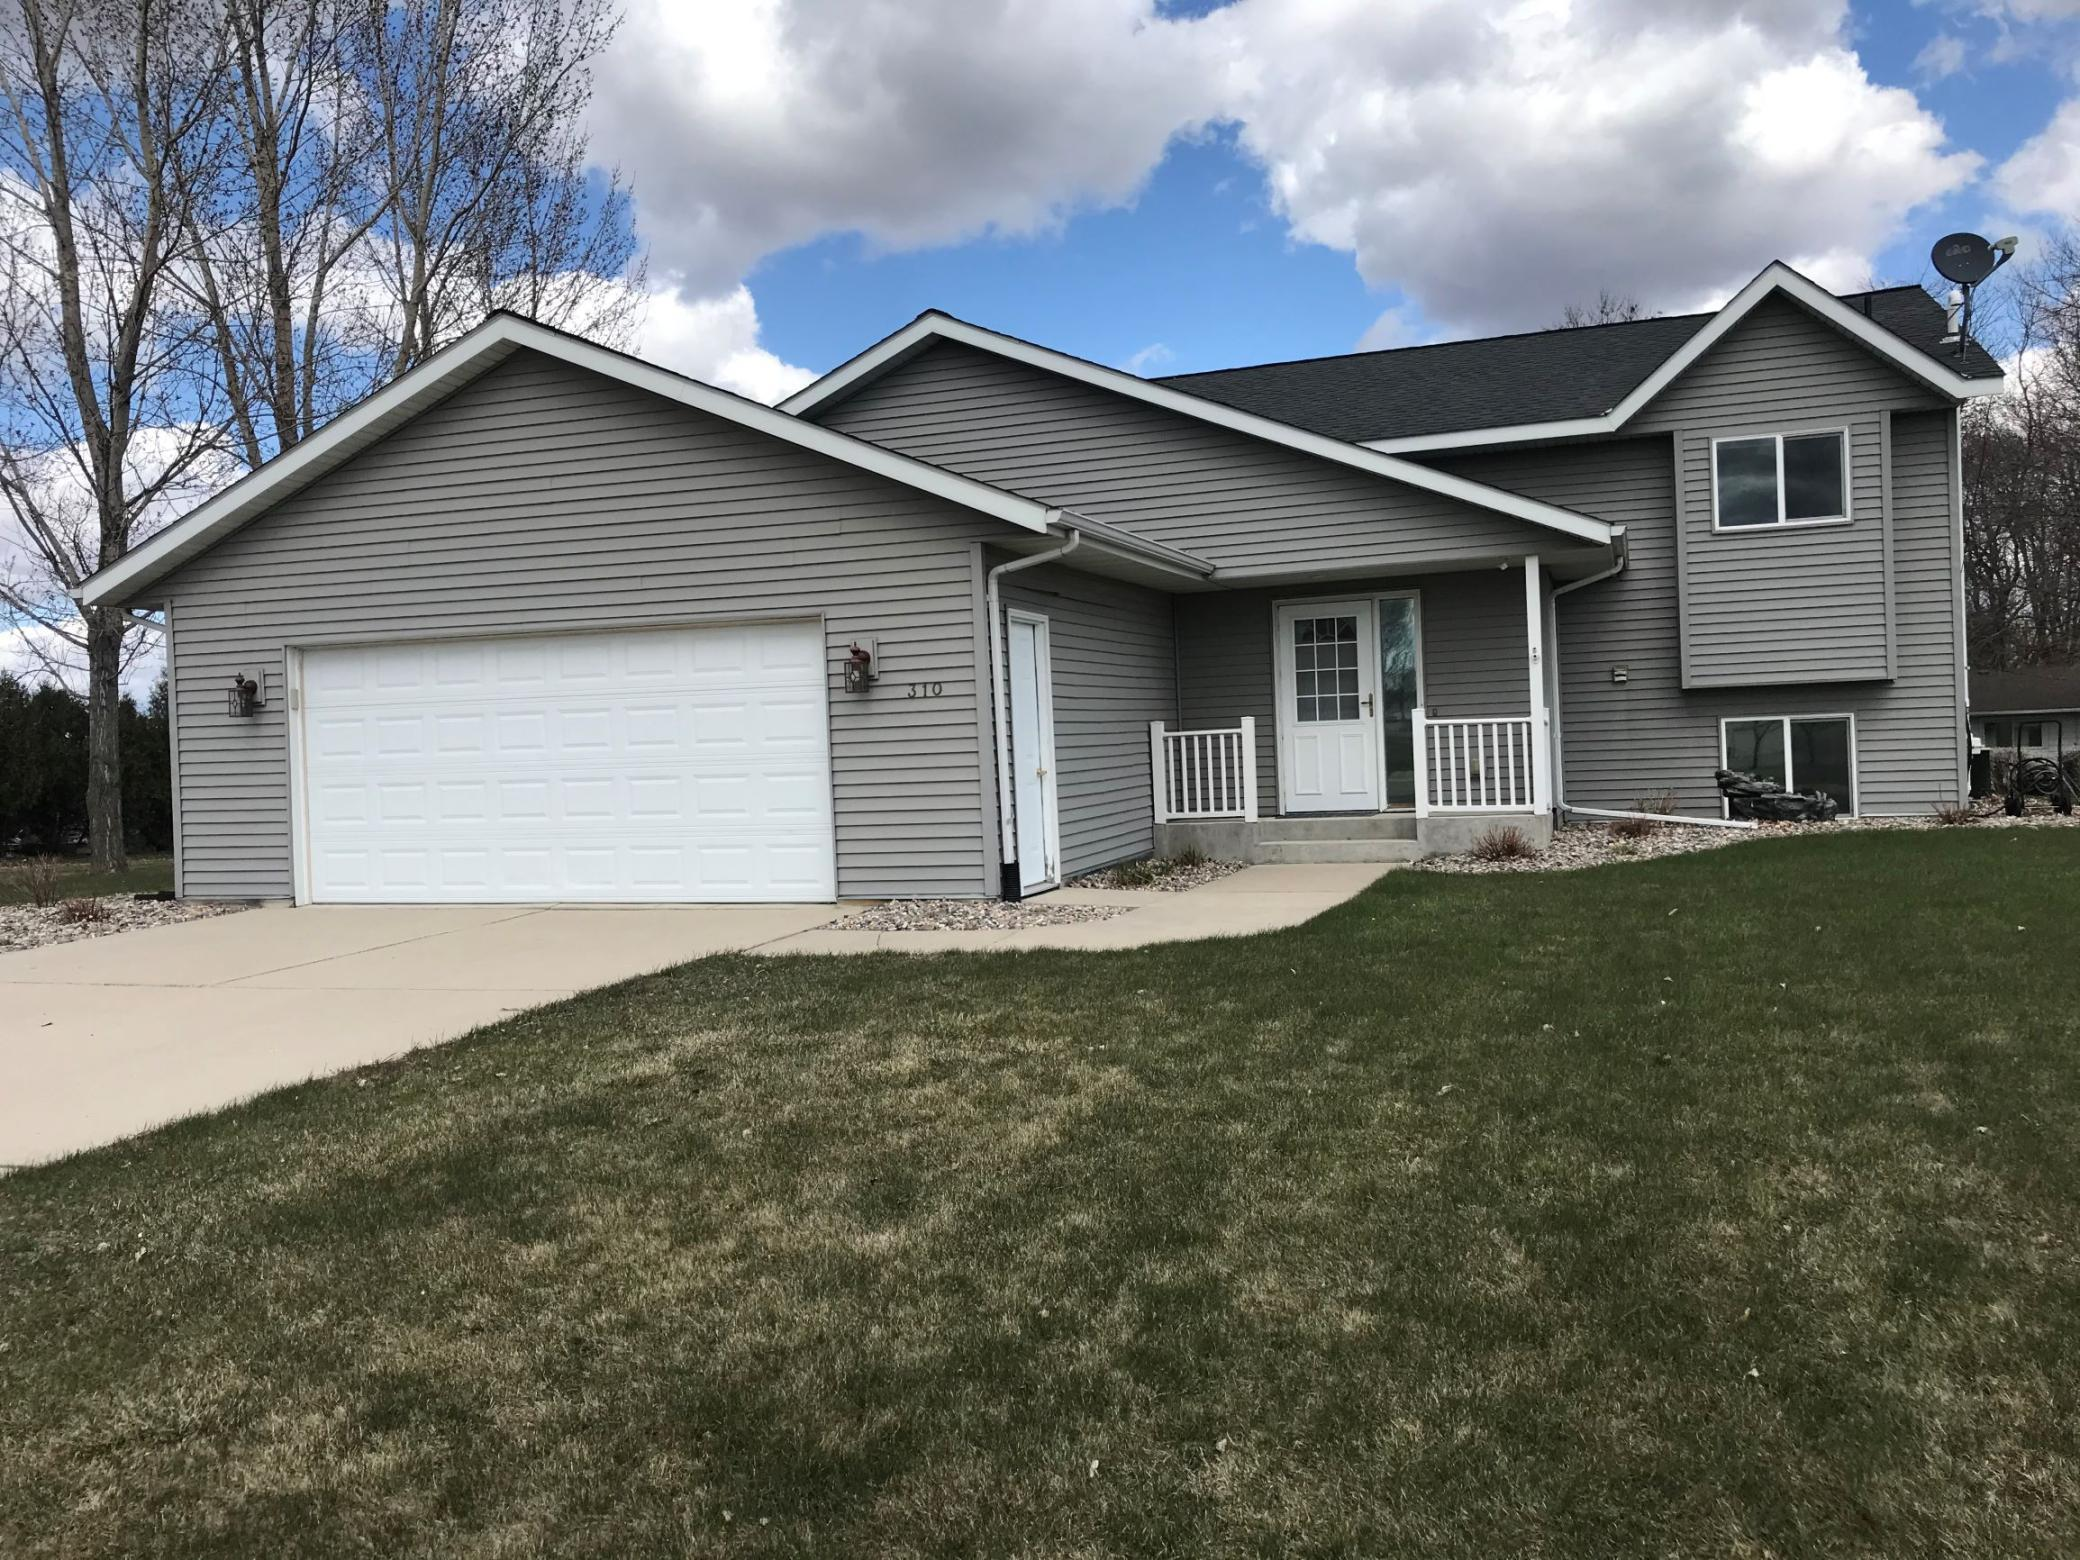 310 4th Street SW Property Photo - Clara City, MN real estate listing